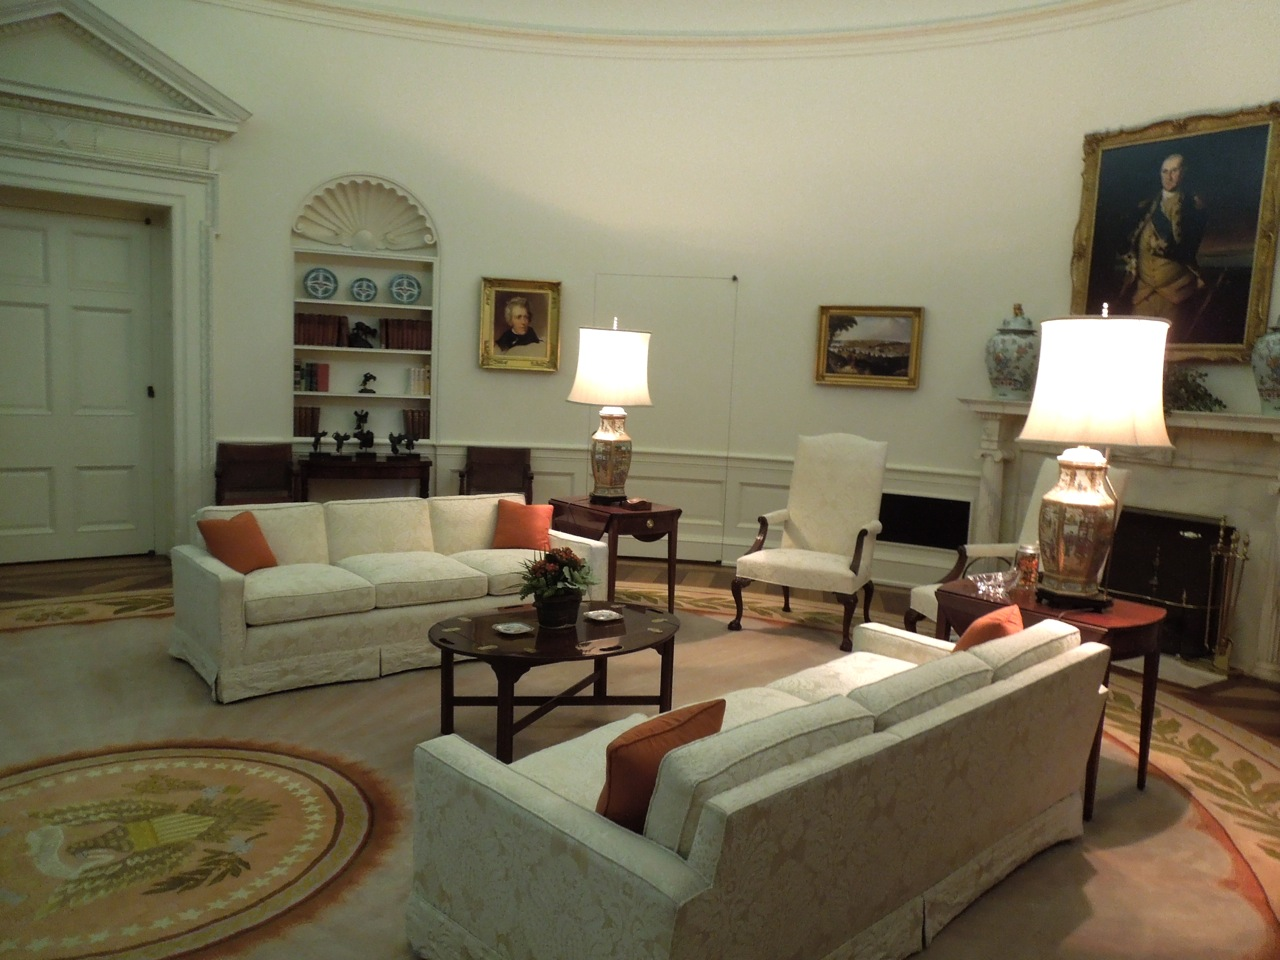 reagan oval office. President Reagan Oval Office E